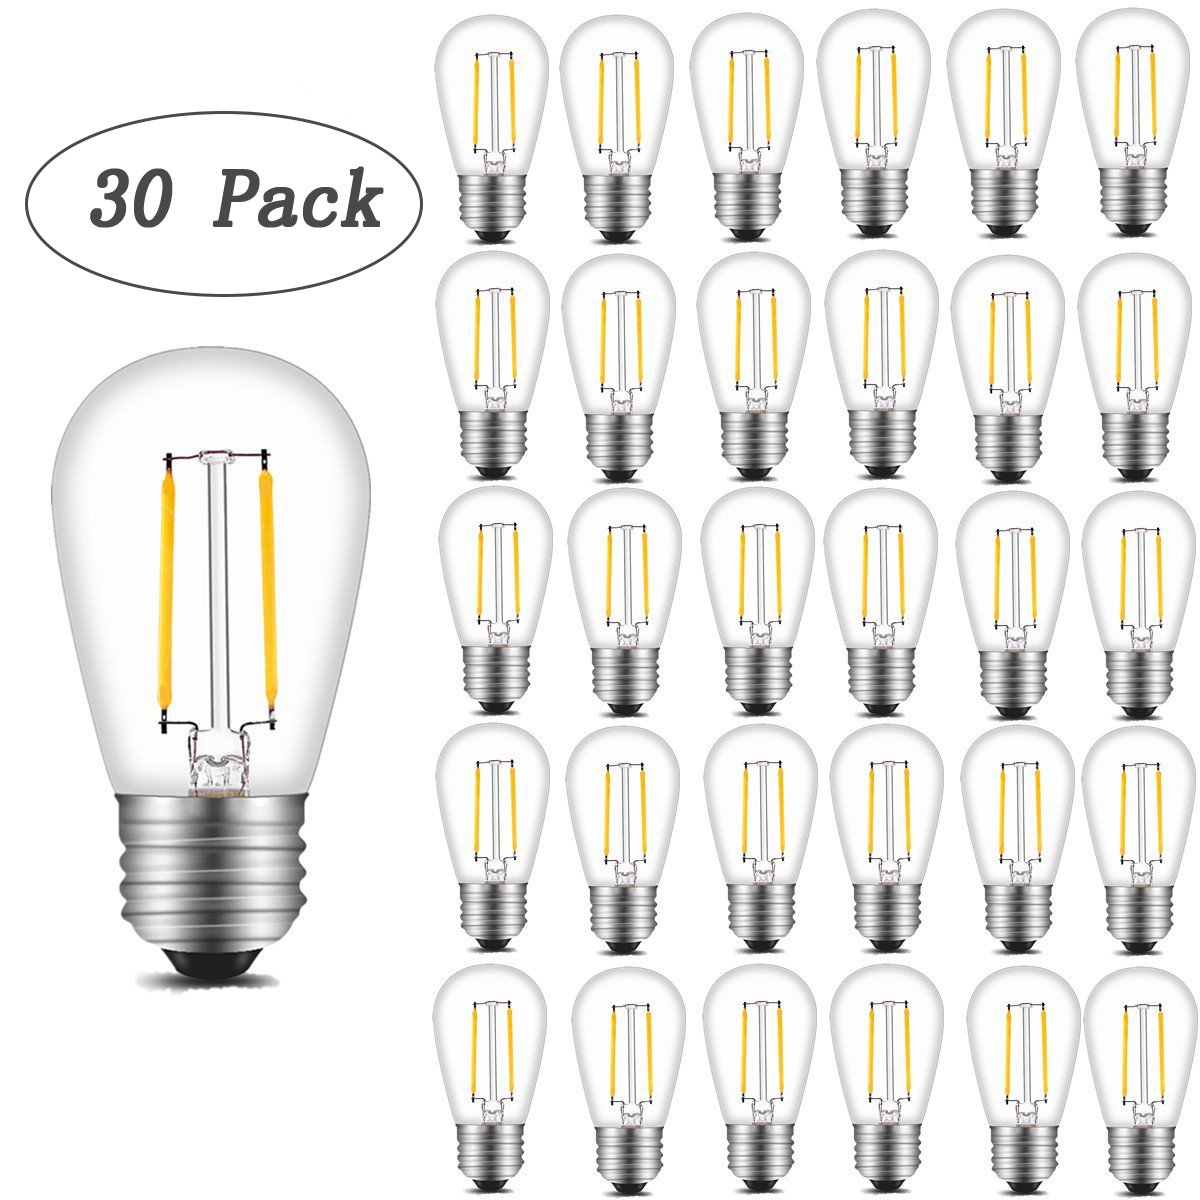 INNOCCY Vintage S14 LED Light Bulbs, 2W 200 Lumens 2700K SoftWarm Waterproof Bulb Great for Outdoor String Lights, 30 Pack